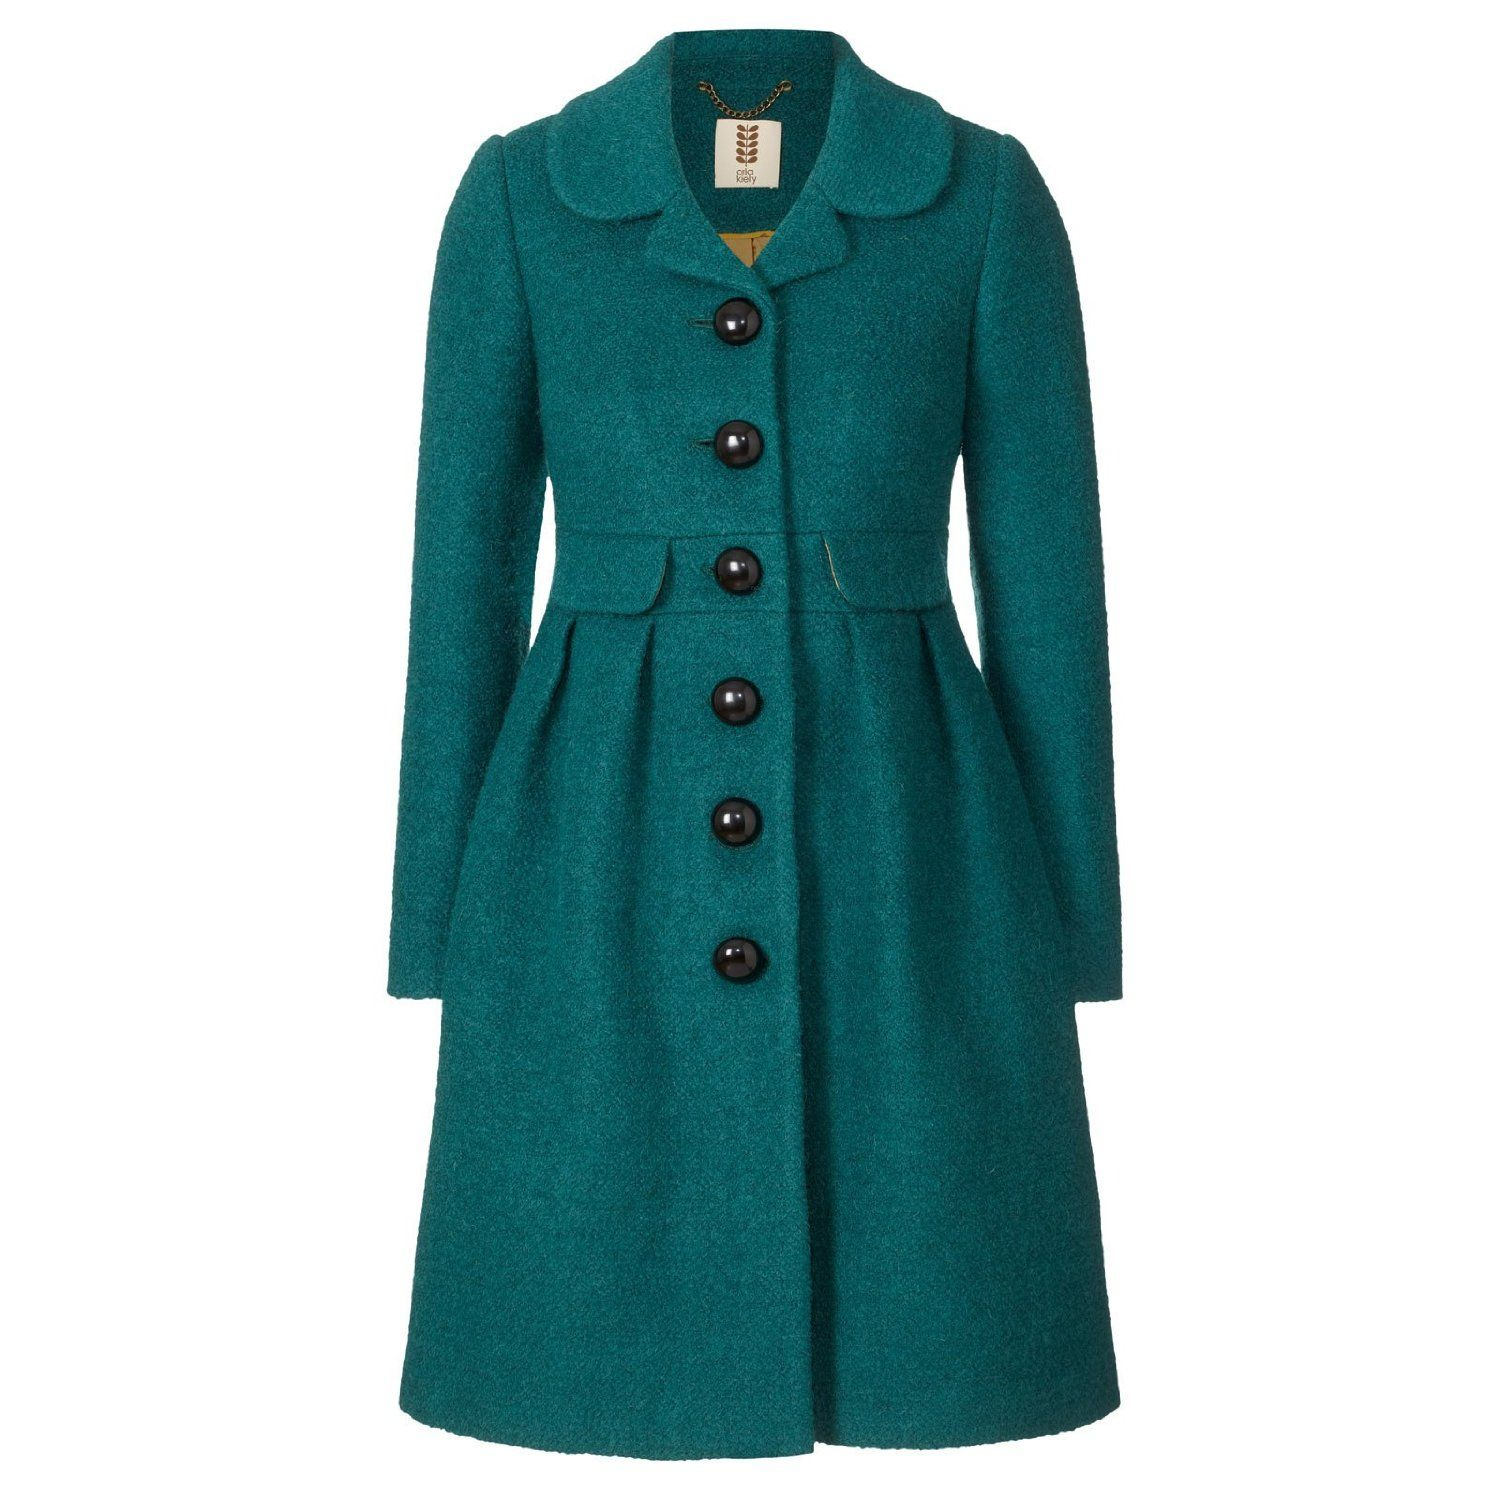 Amazon Com Orla Kiely Womens Boucle Coat Teal S Clothing